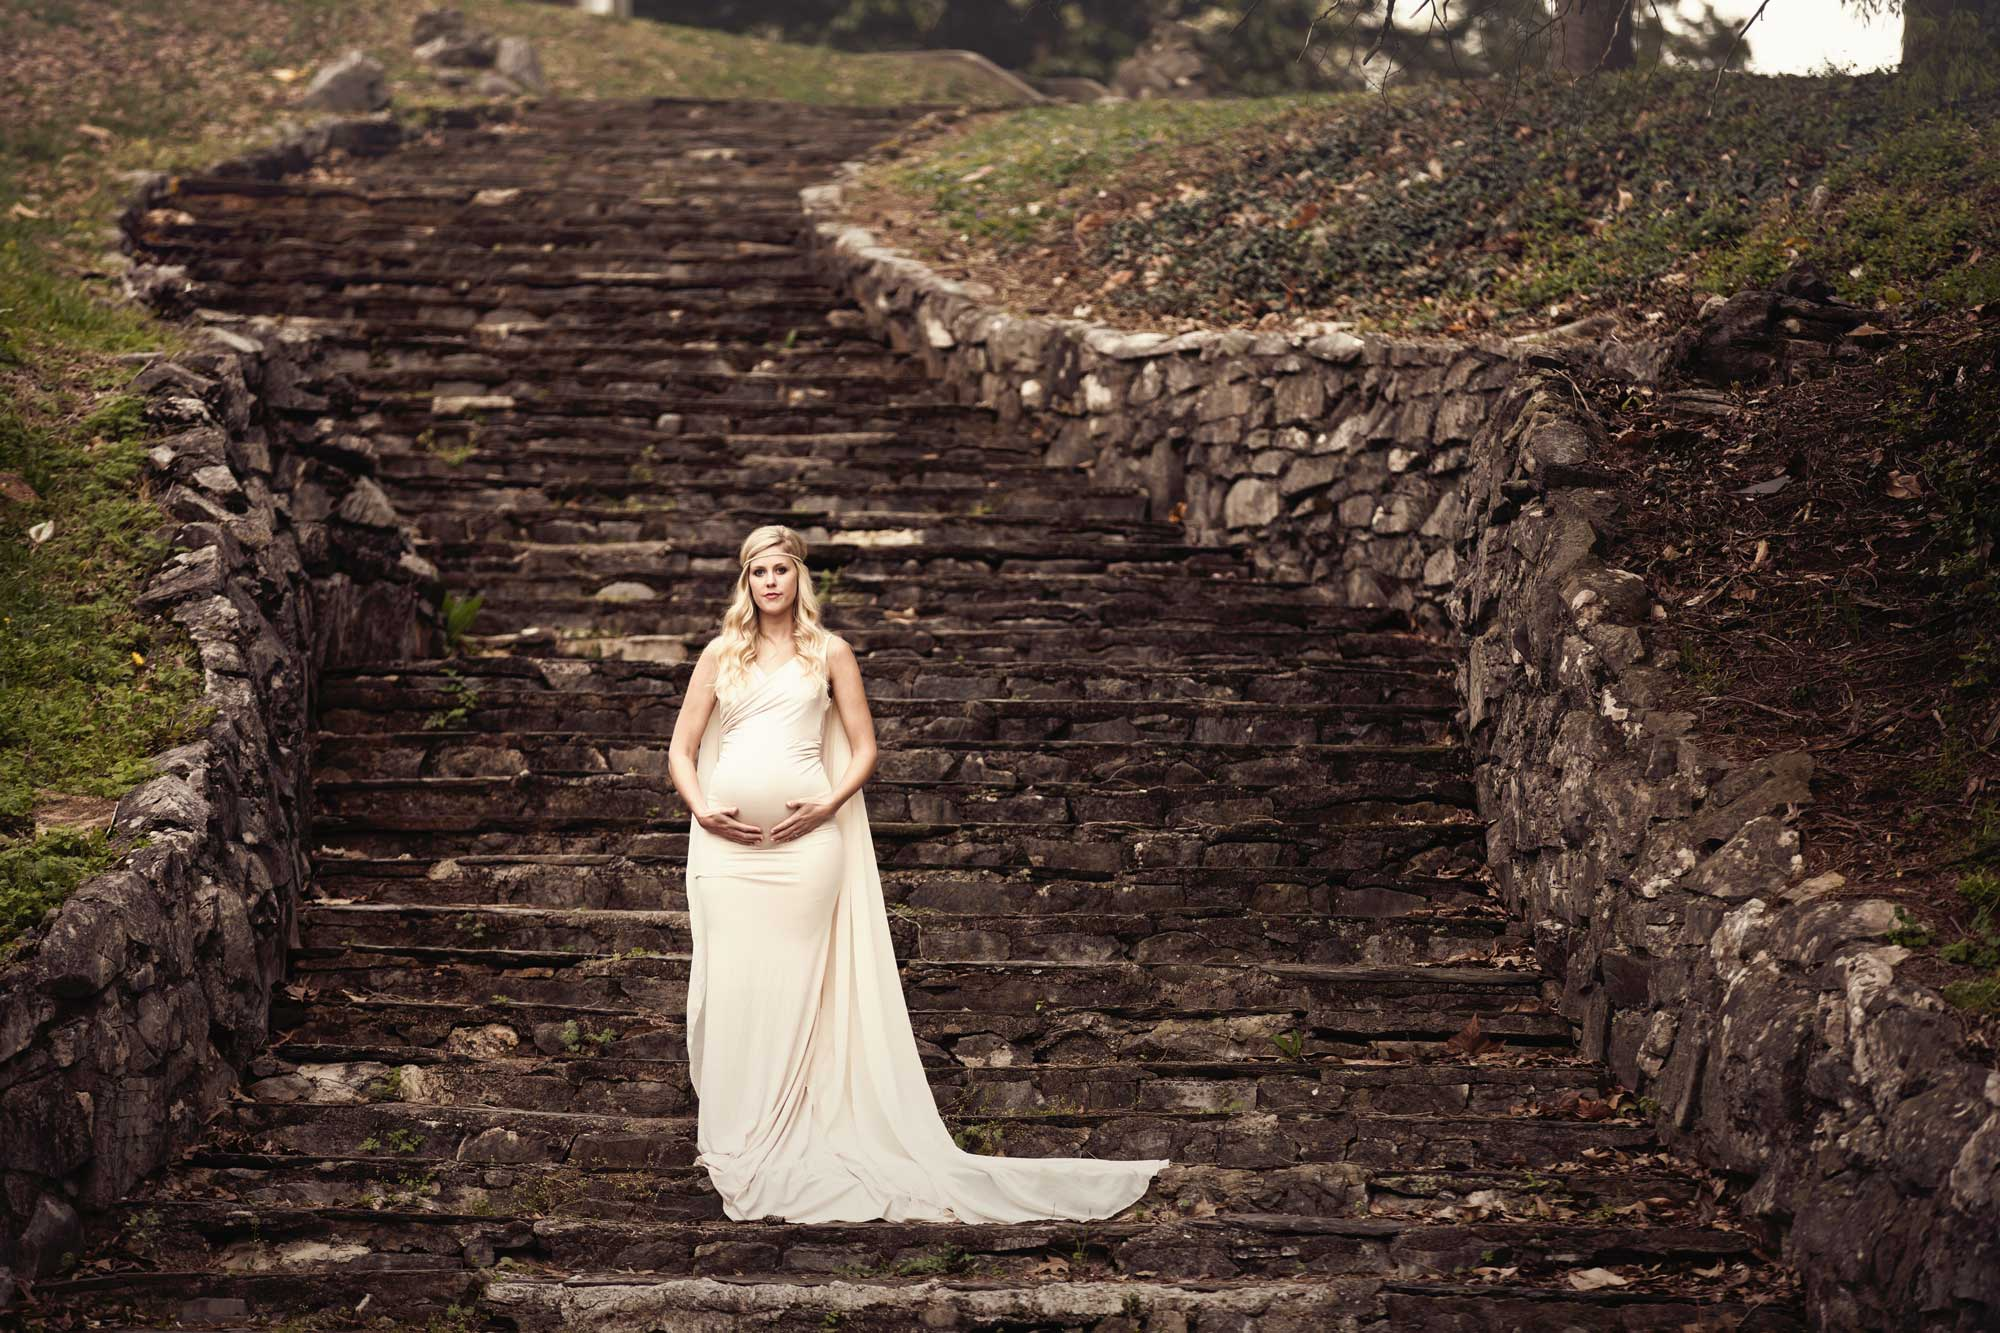 knoxville-maternity-photographer-stone-steps-greek-gown.jpg